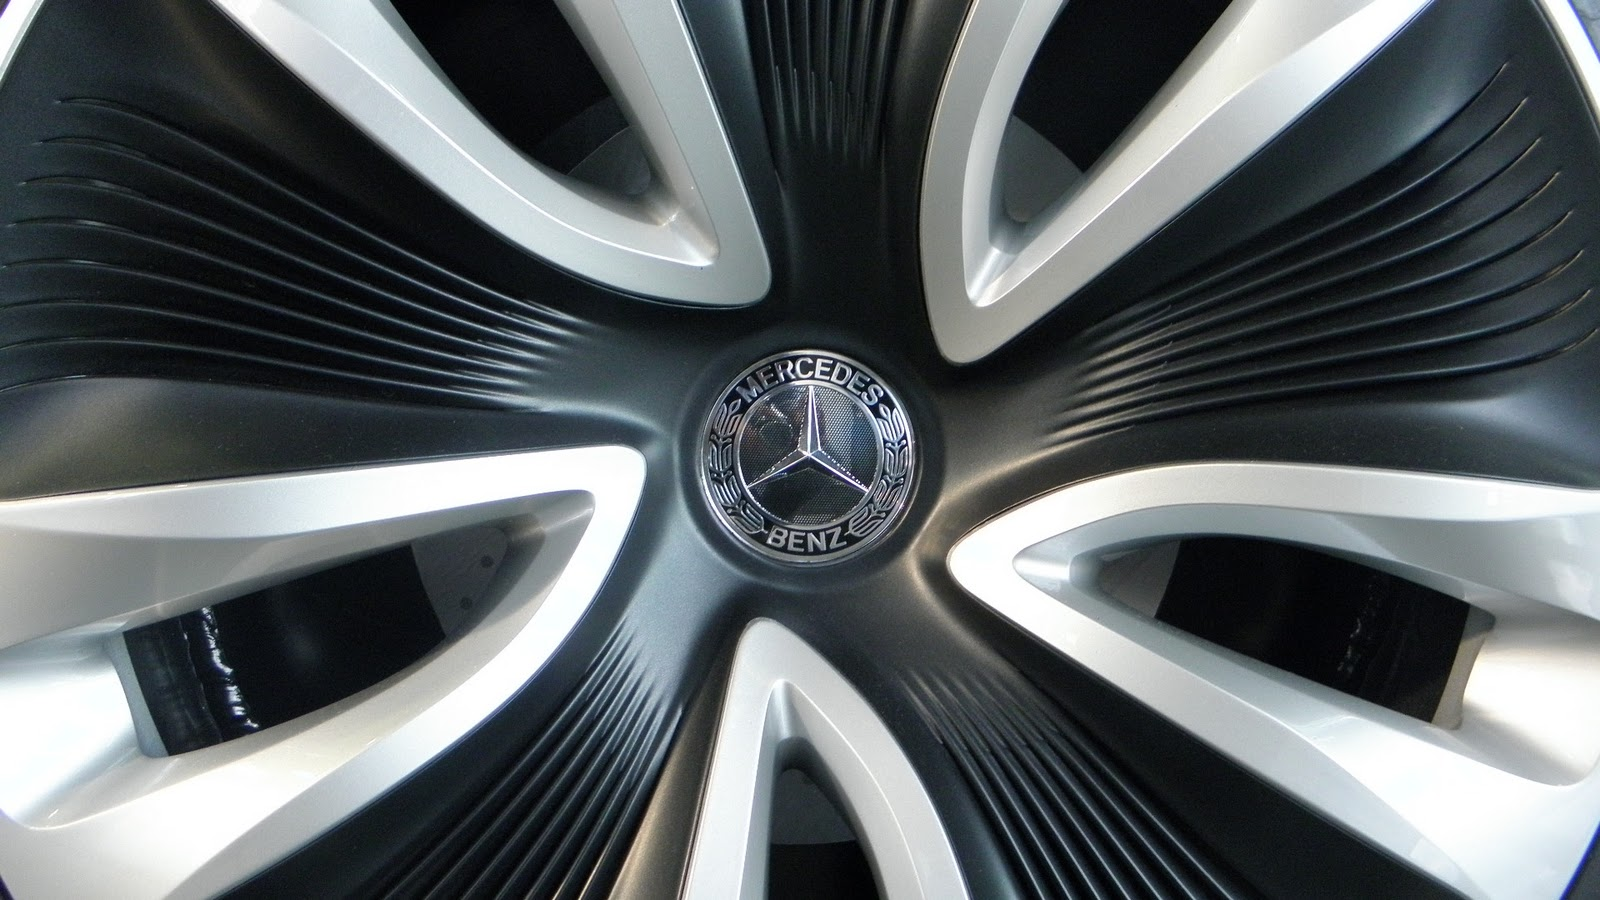 Benz logo wallpaper mercedes logo on wheel wallaper mercedes benz logo wallaper voltagebd Images